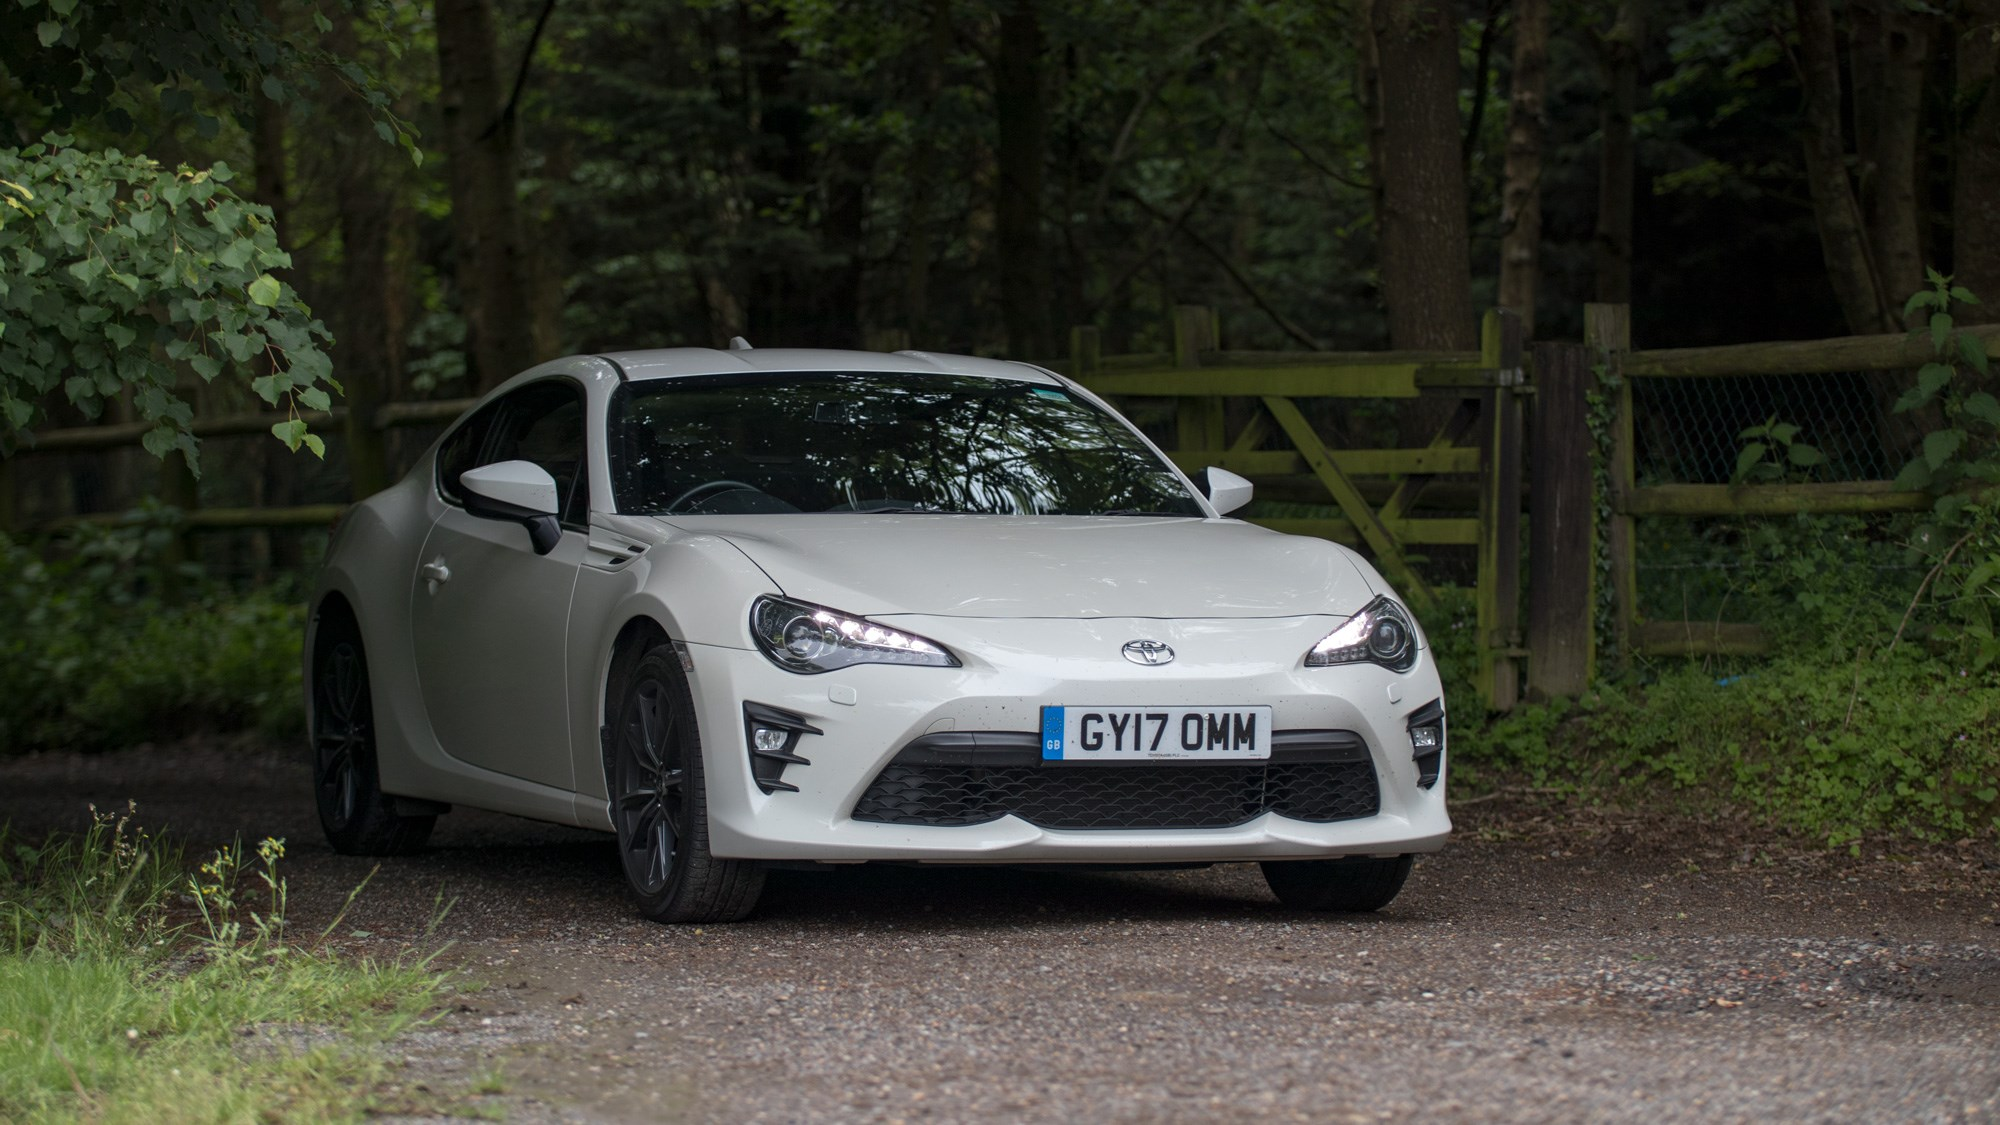 Toyota GT86 review: fun in slow-mo | CAR Magazine